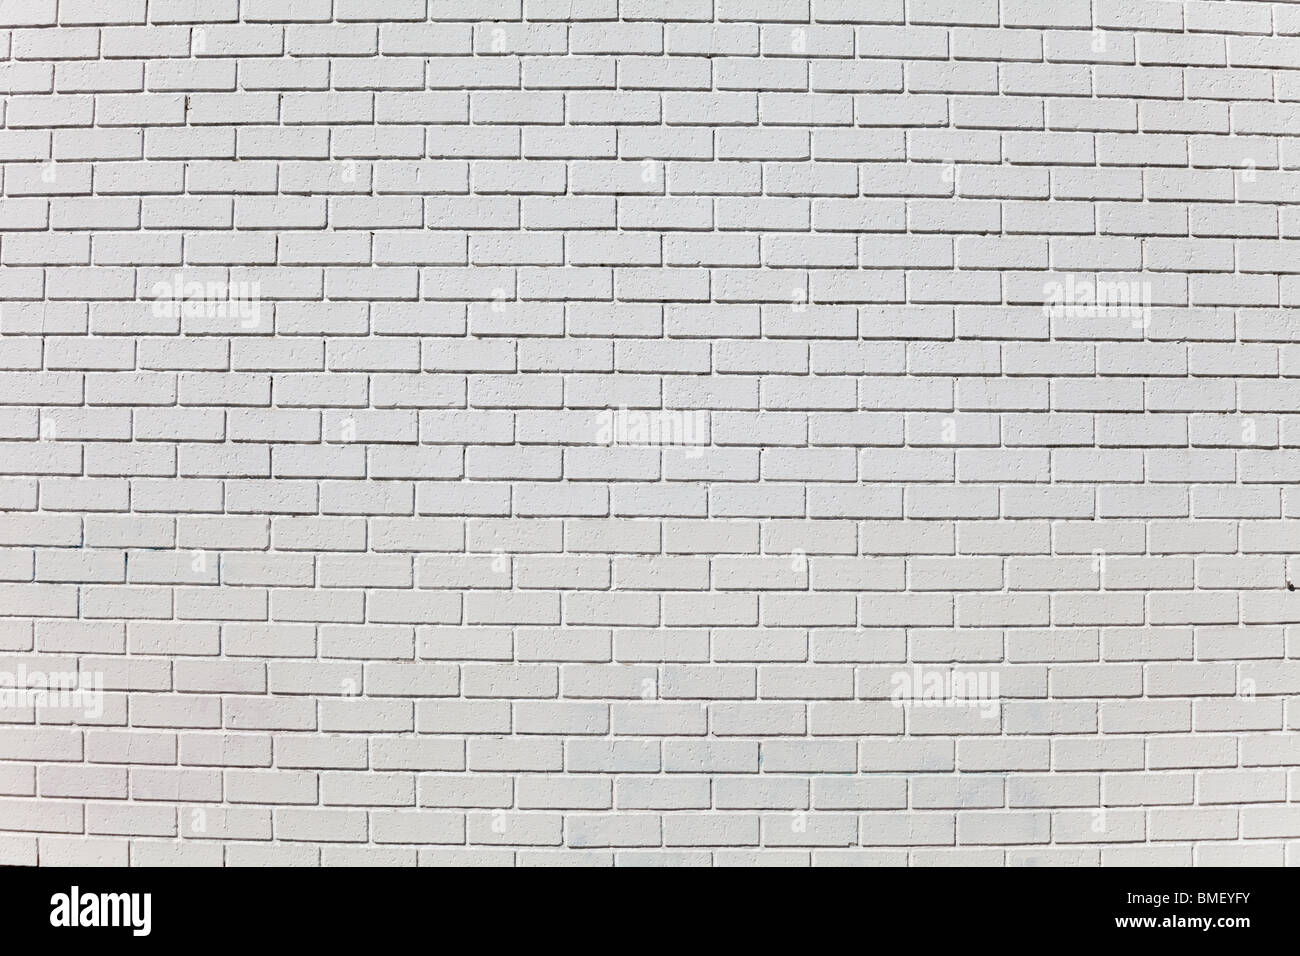 Mur de brique pour le fond blanc Photo Stock